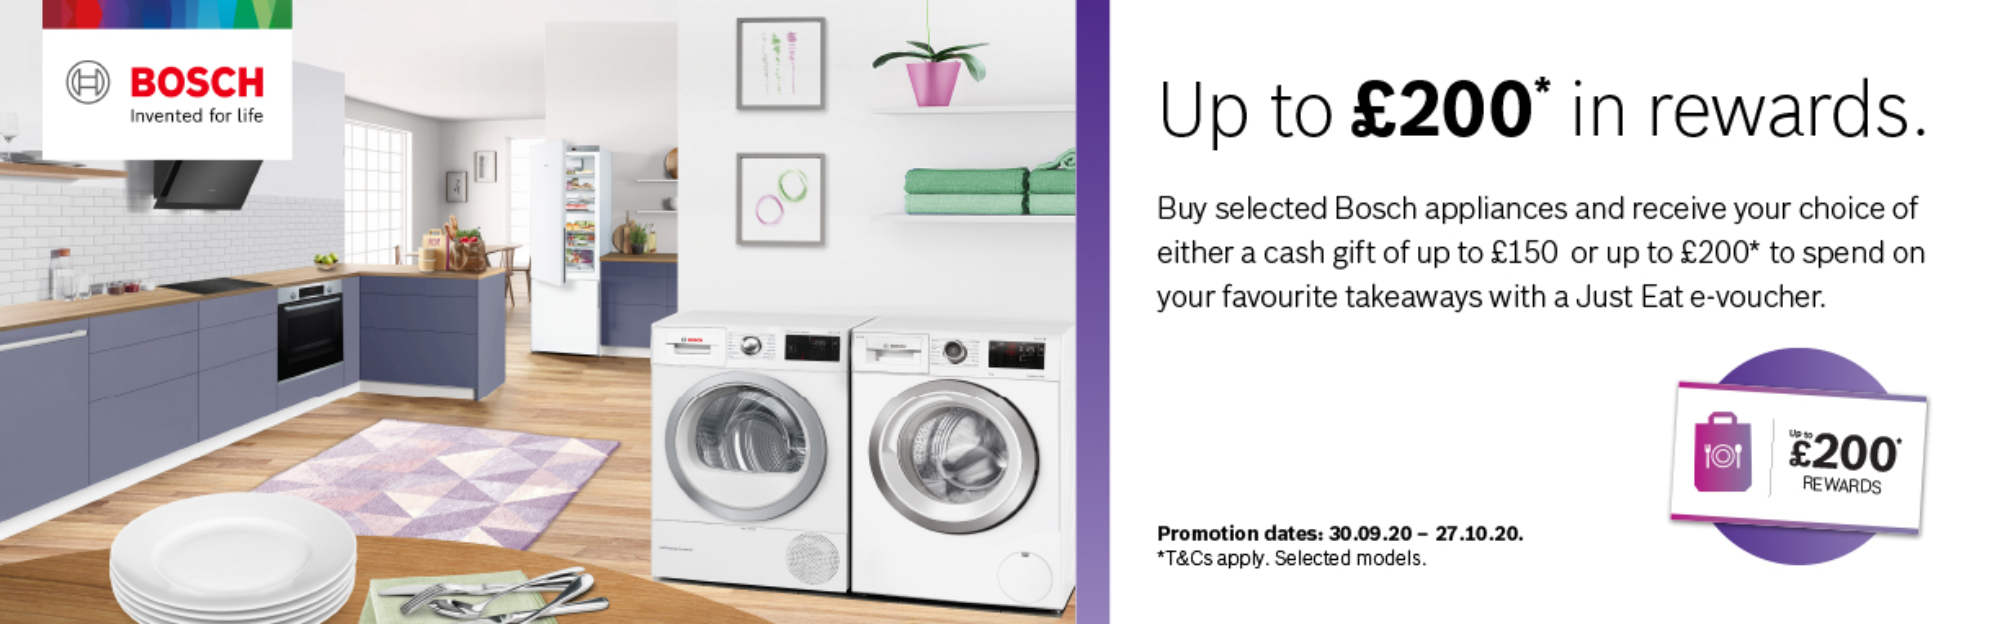 Receive up to £200 in rewards from BOSCH this Autumn